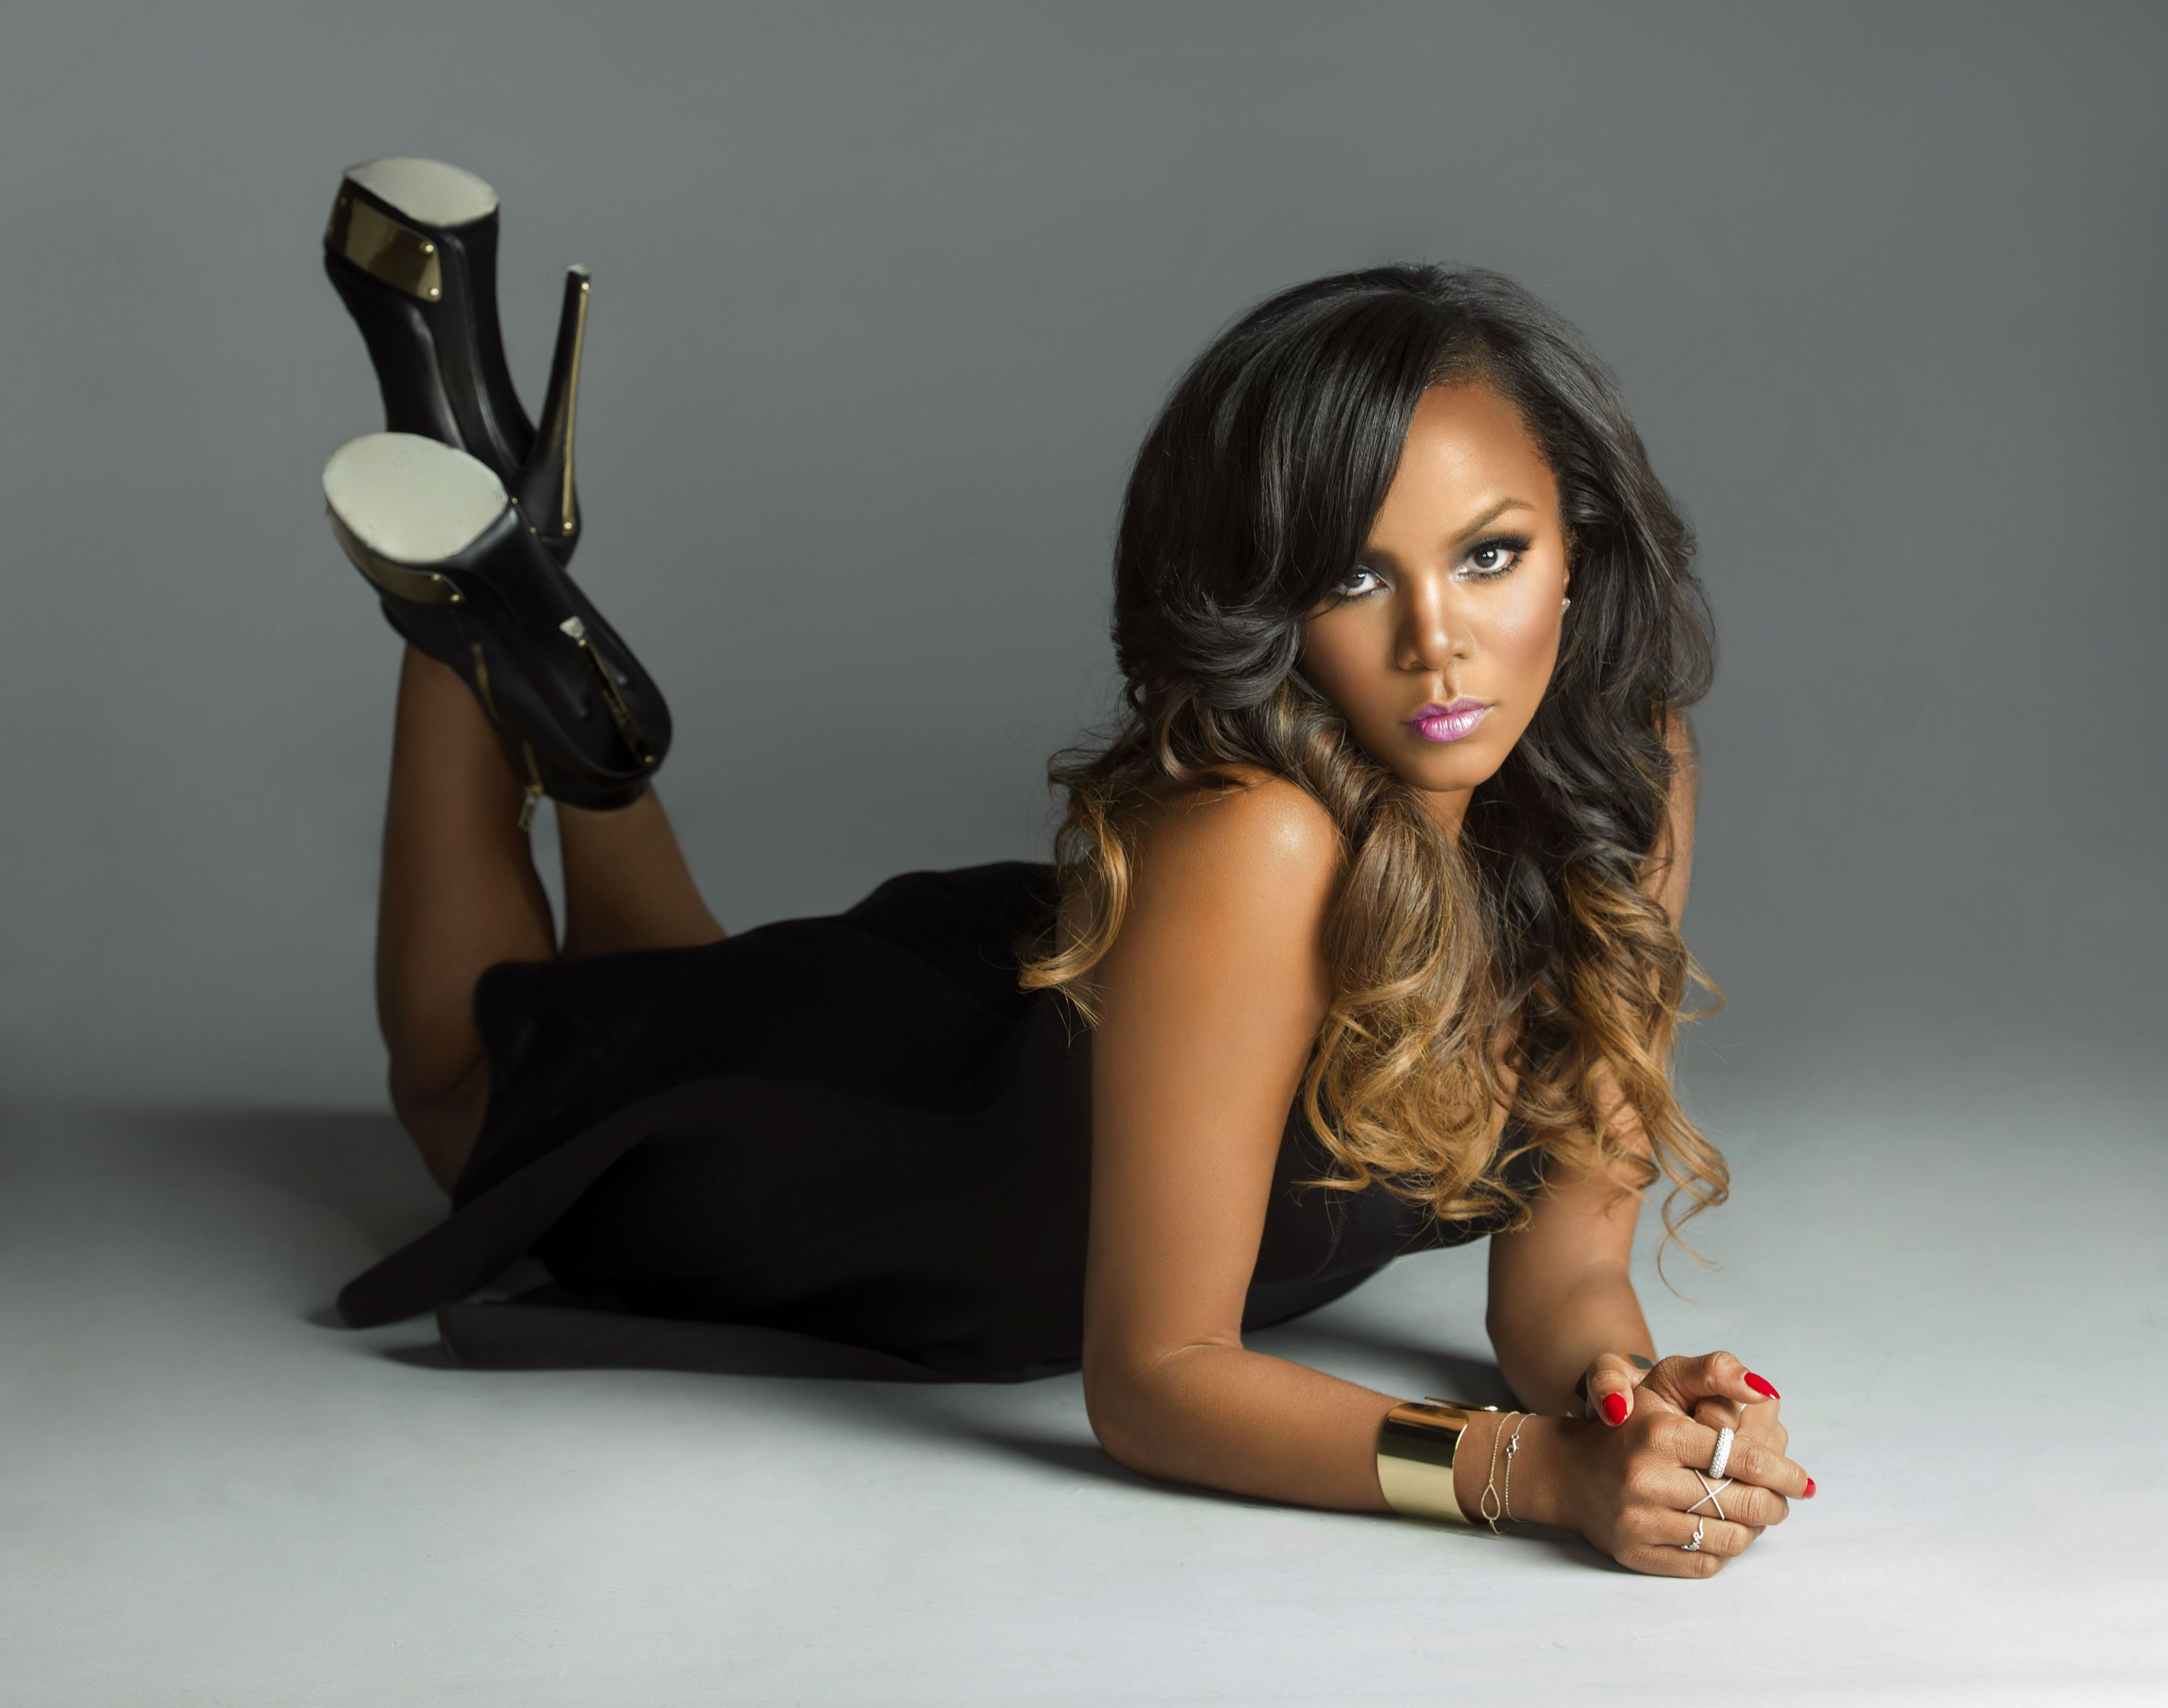 Impossible sexy photos of letoya luckett cannot tell